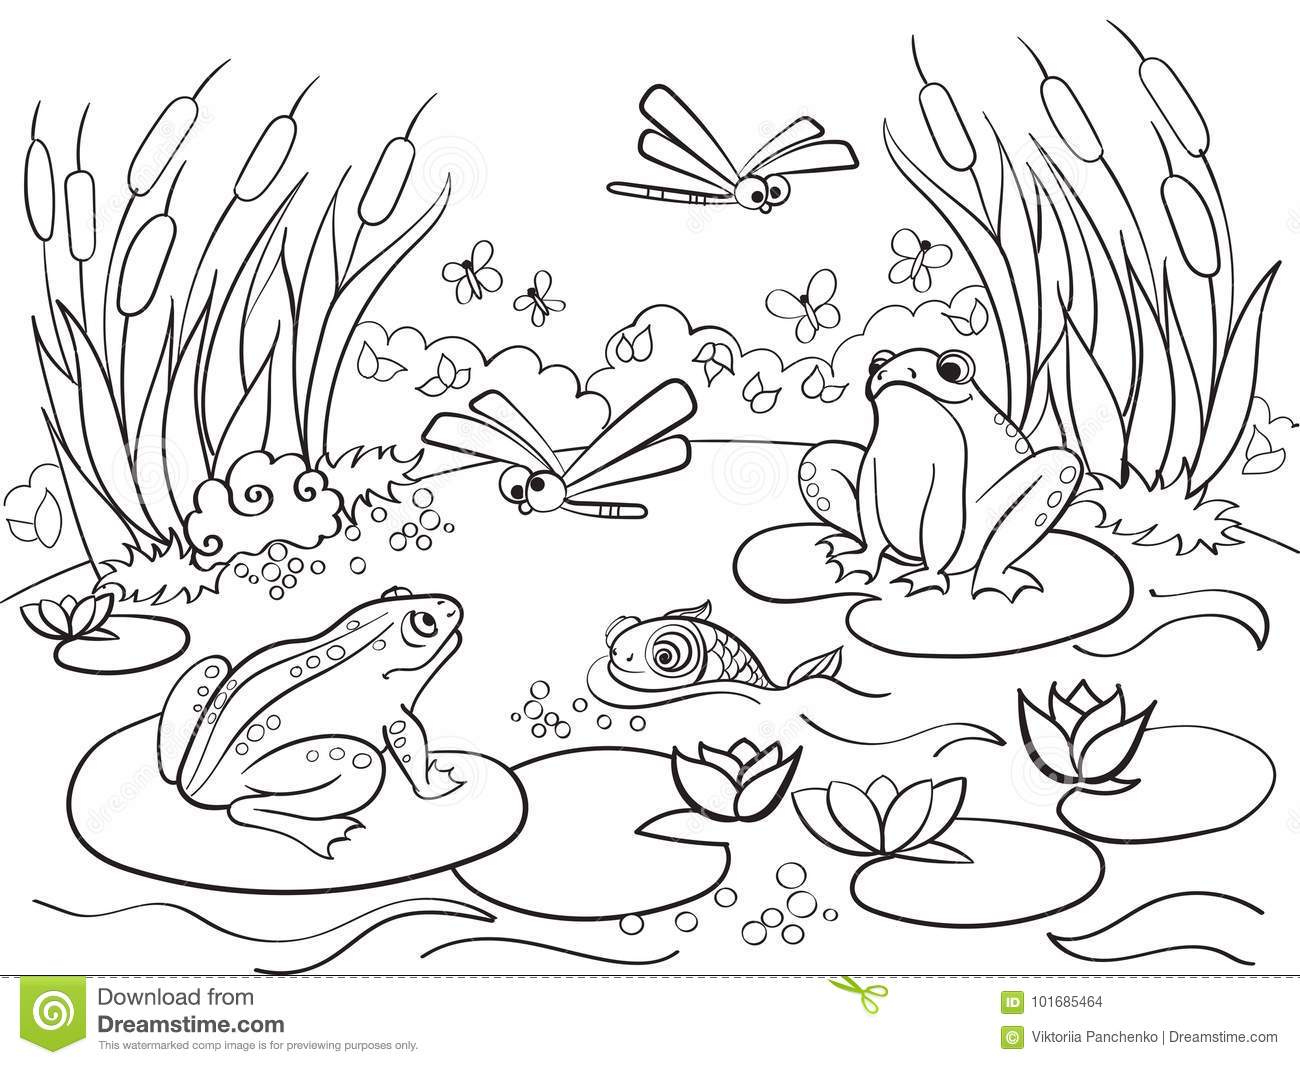 Wetland Landscape With Animals Coloring Book For Adults Raster Illustration Anti Stress Adult Black And White Lines Insect Frog Cane Dragonfly